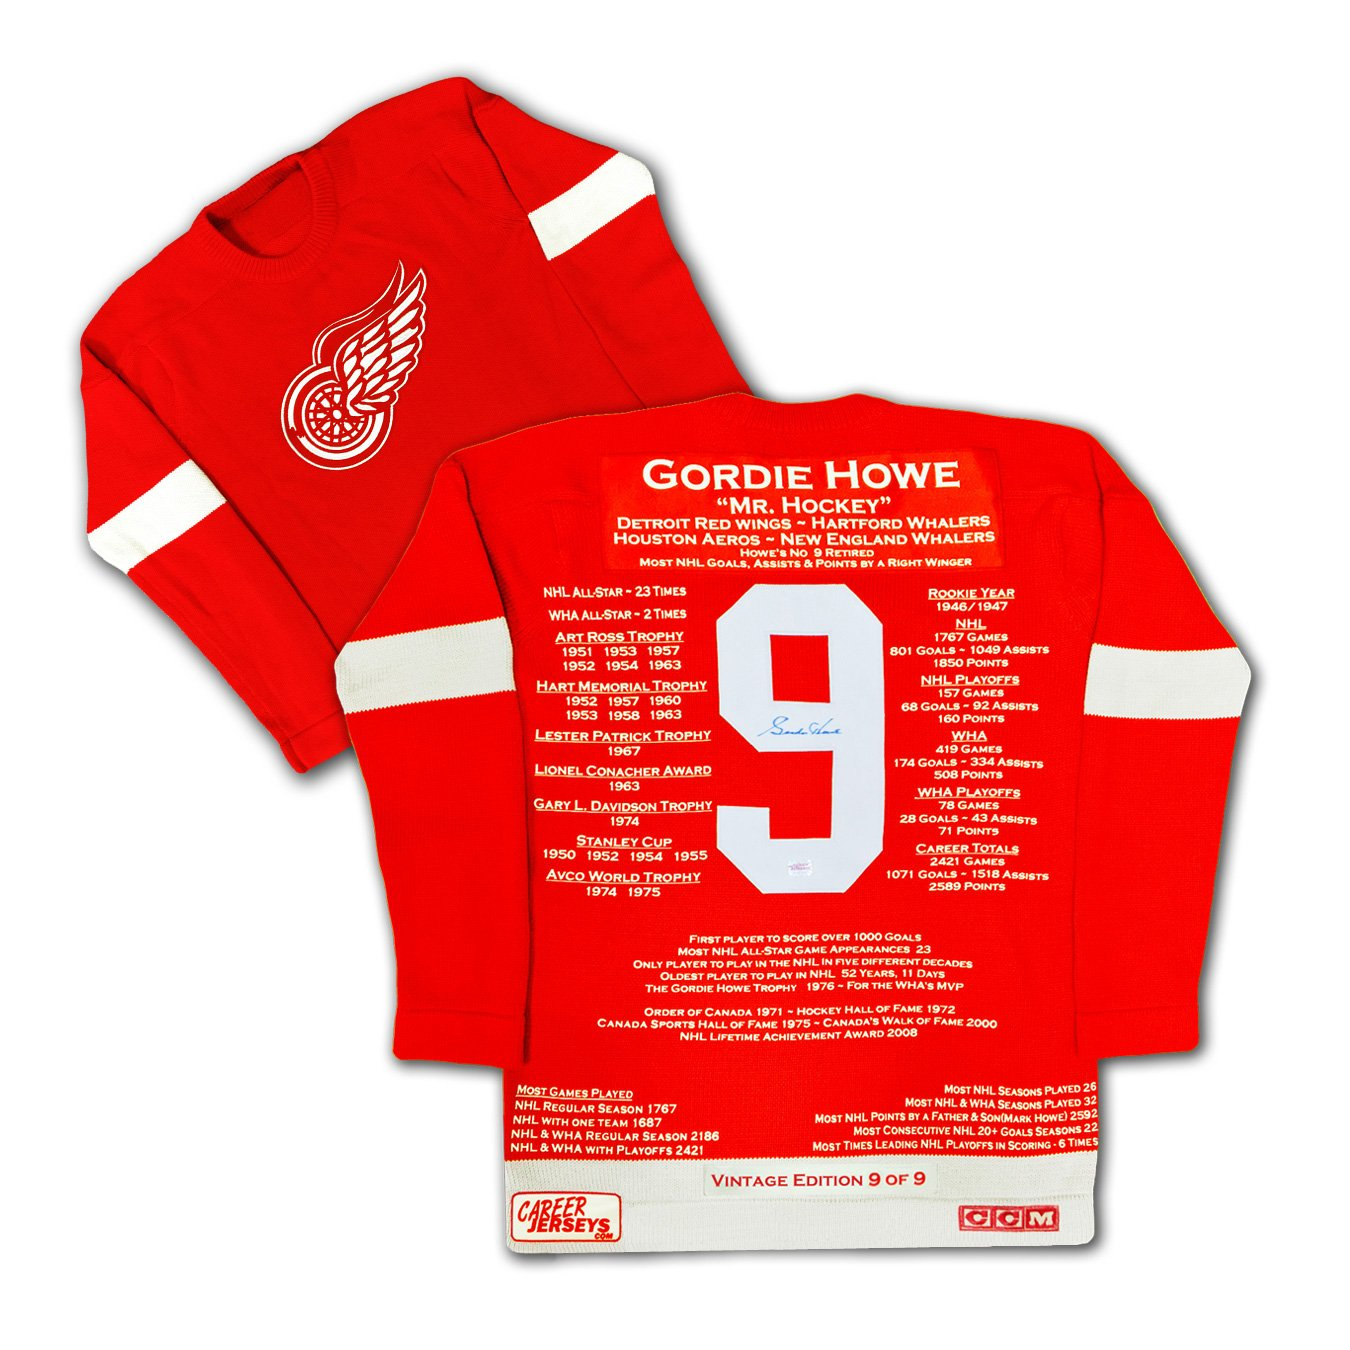 Gordie Howe Vintage Edition Wool Career Jersey Ltd Ed 9 of 9 - Signed Red Wings